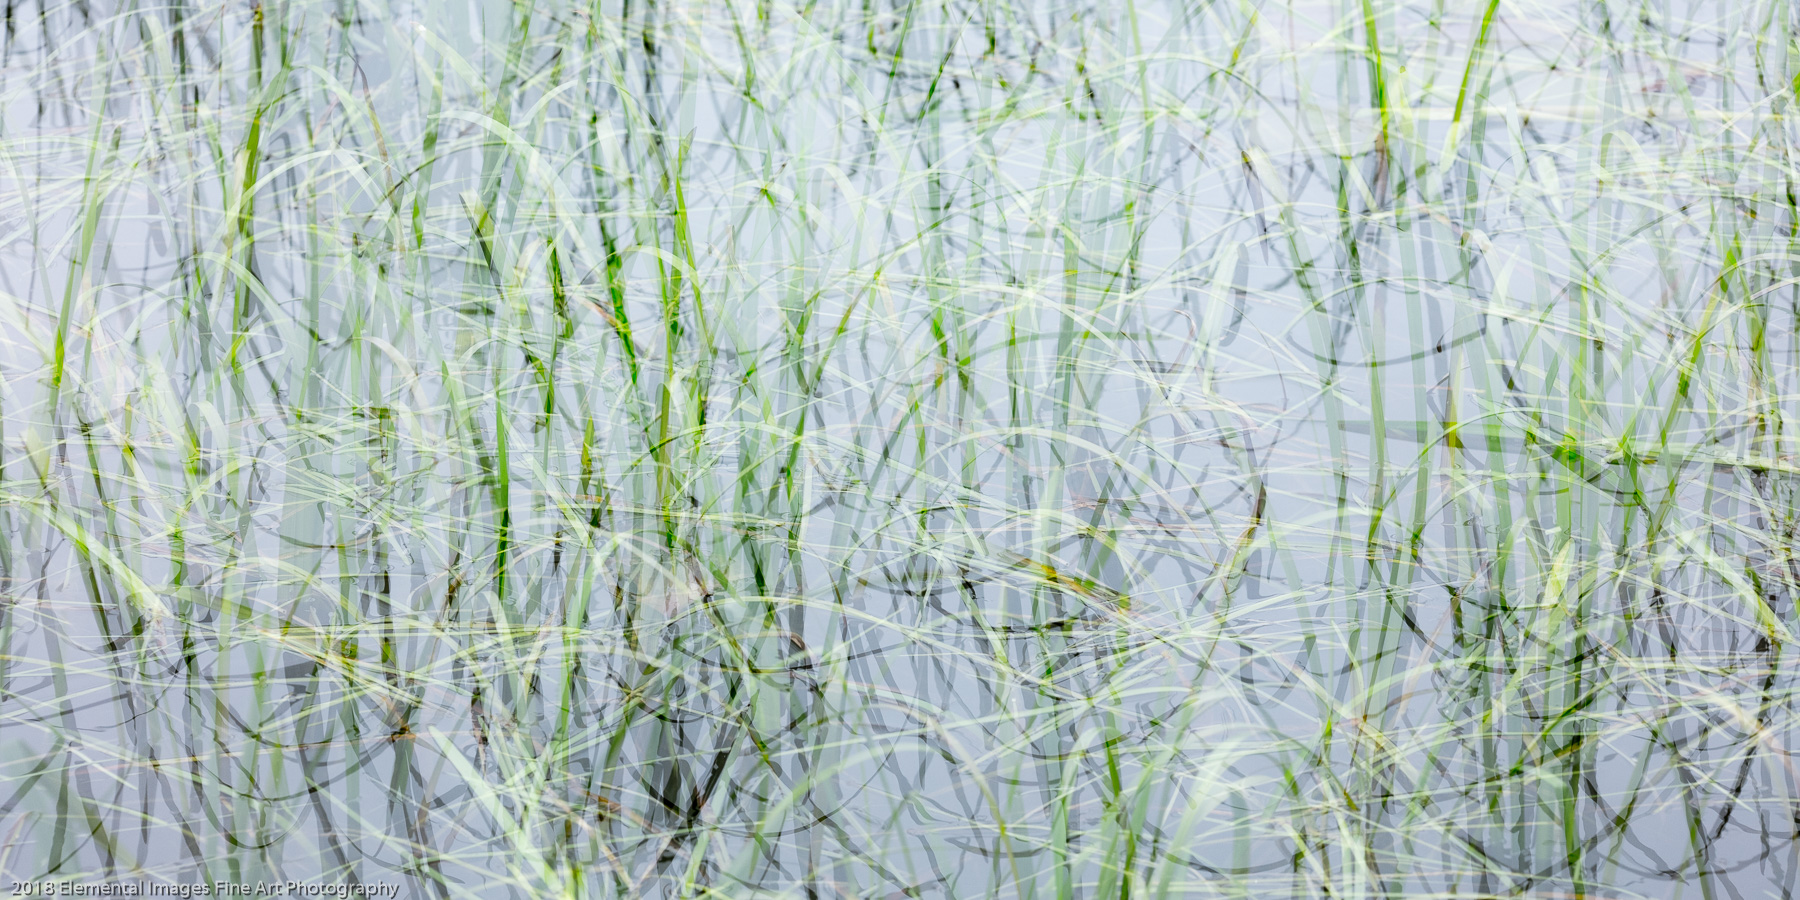 Grasses #166 | Cape Meares | OR | USA - © 2018 Elemental Images Fine Art Photography - All Rights Reserved Worldwide